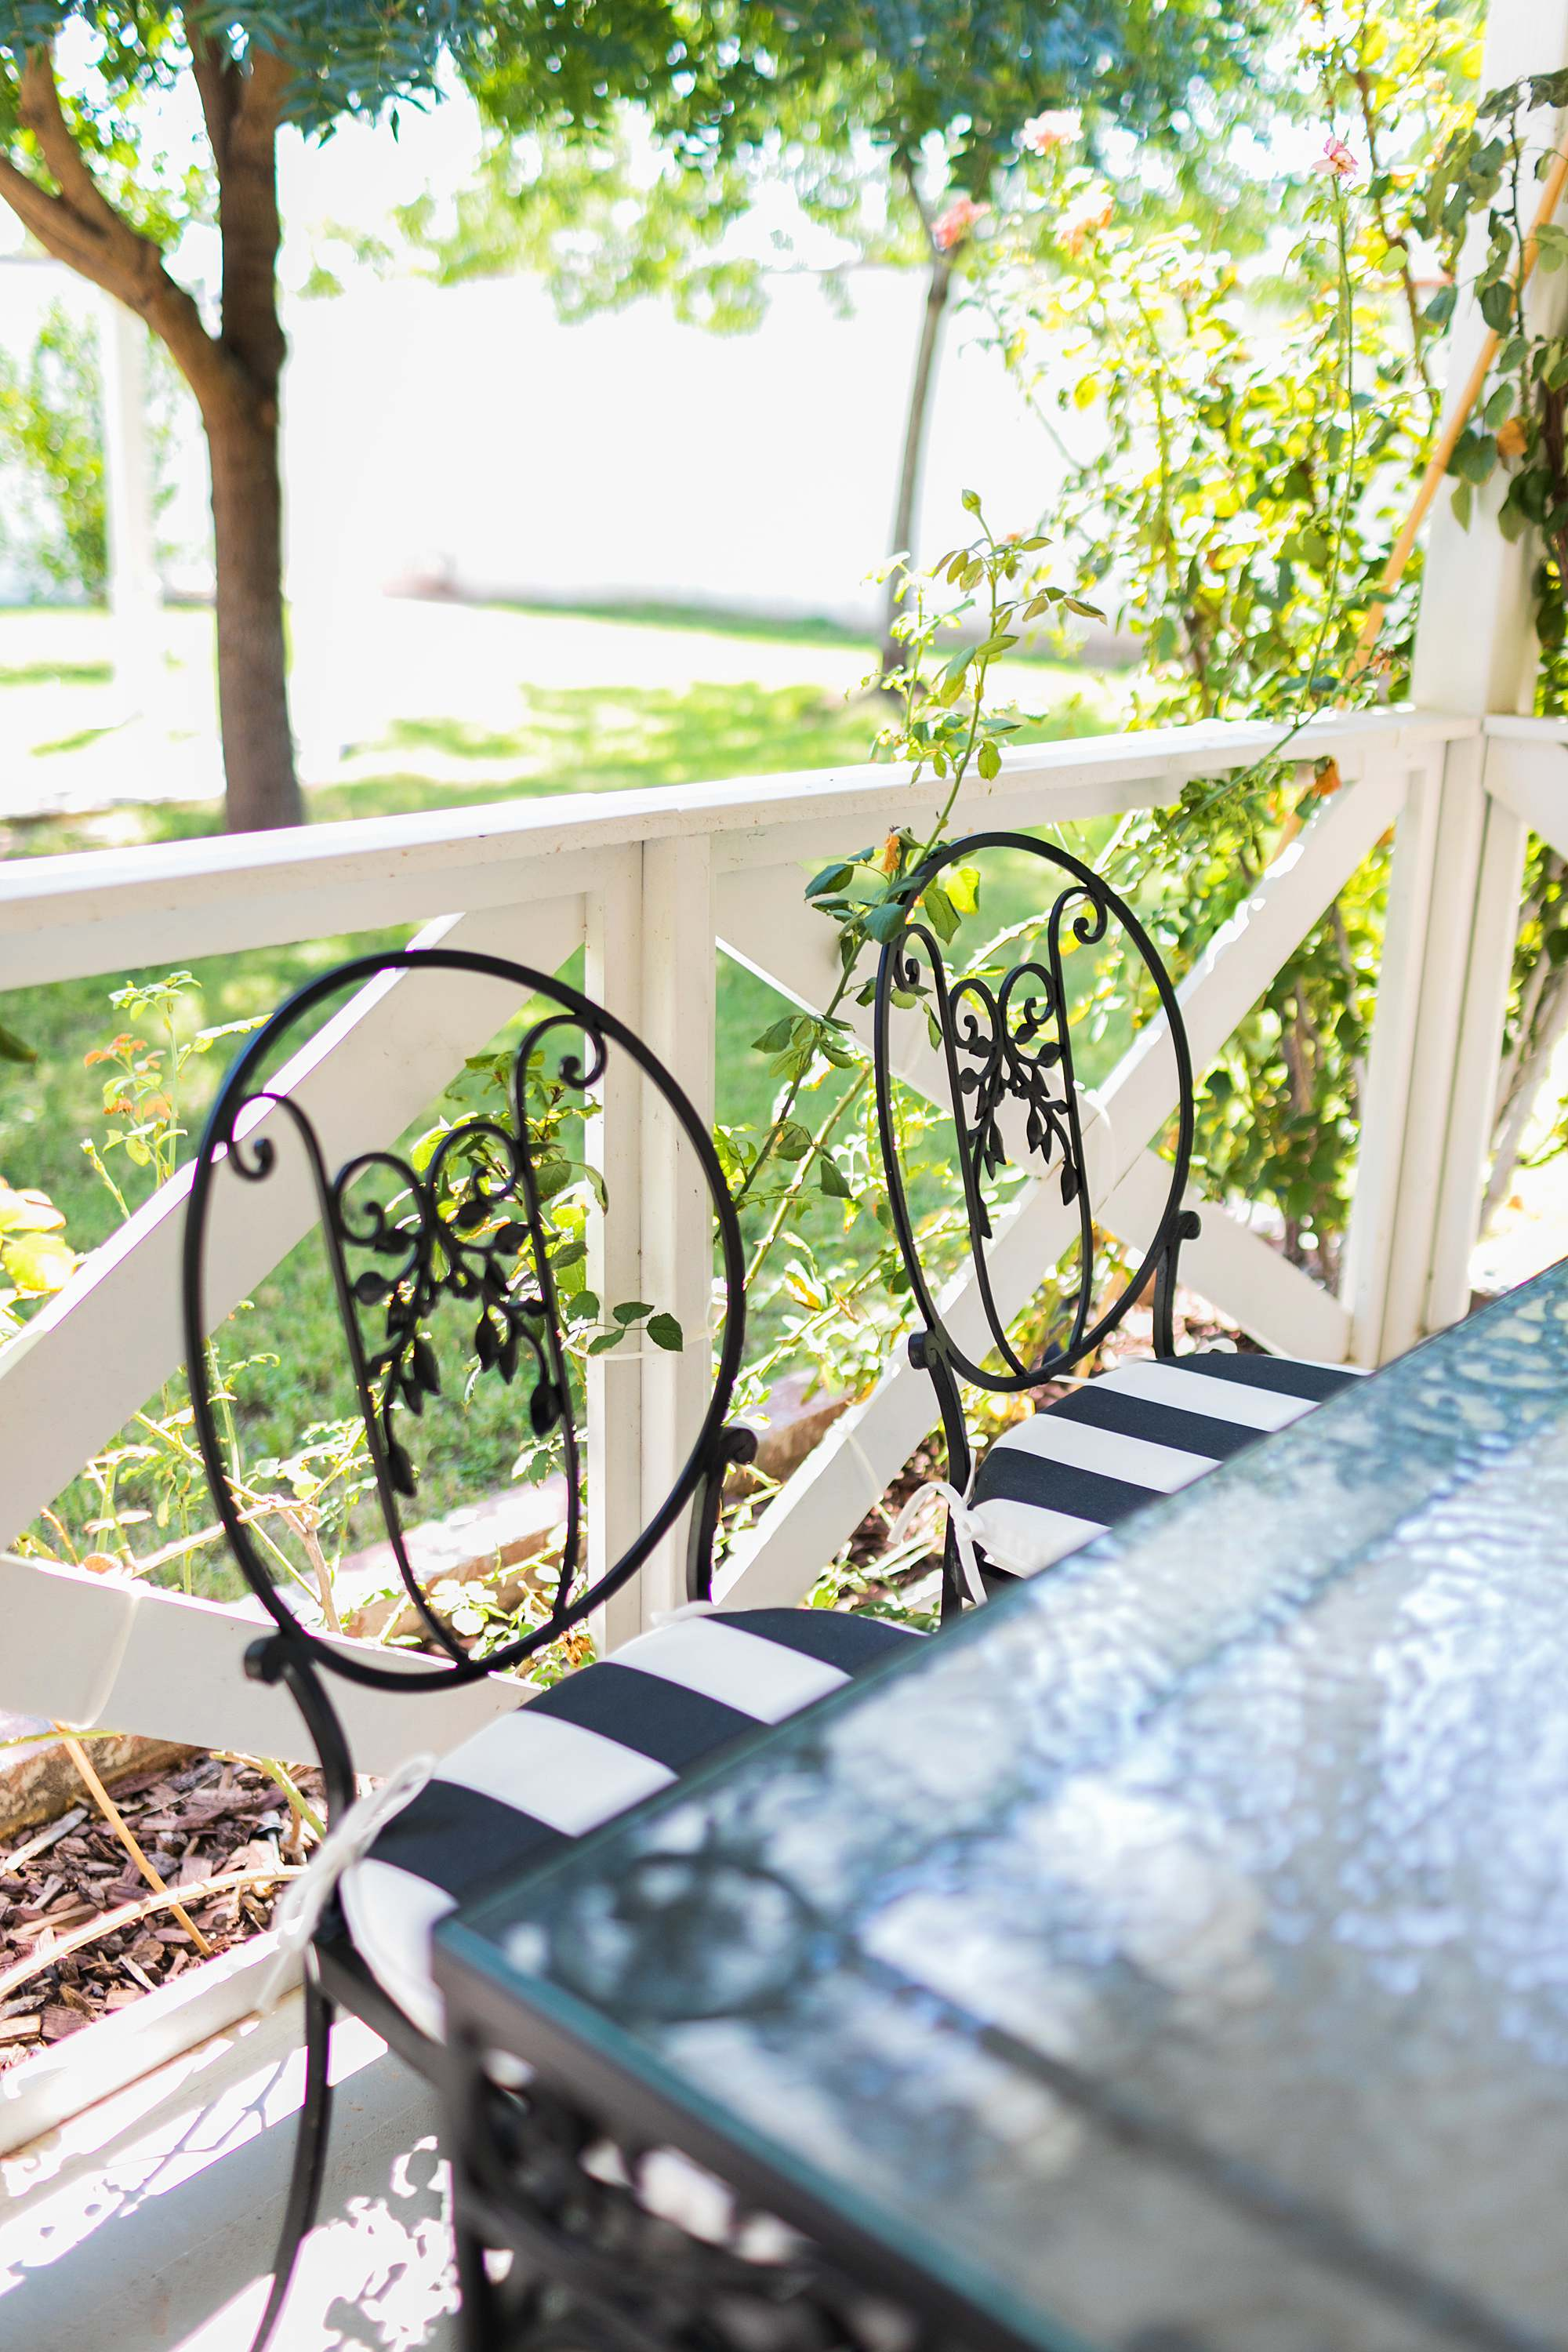 small spaces backyard furniture ideas spray painted black and white scrollwork outdoor table vintage